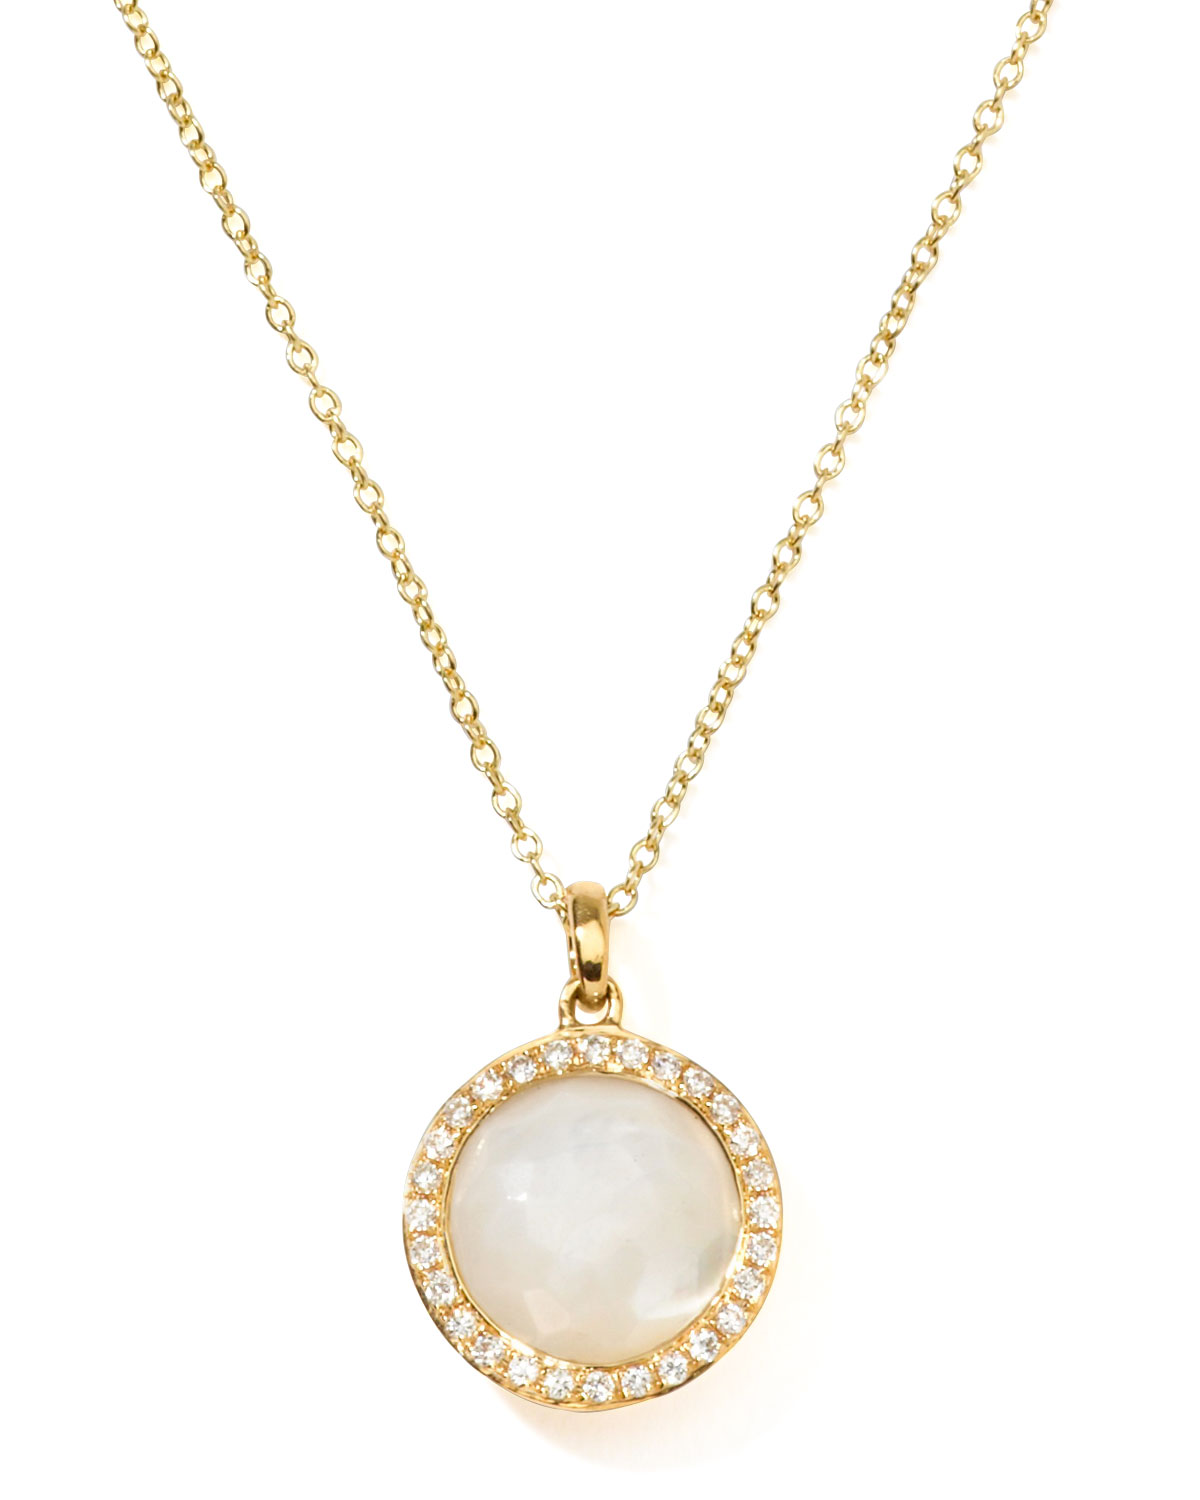 Ippolita 18k Gold Rock Candy Mini Lollipop Diamond Necklace in Mother-of-Pearl U8VGgxHS